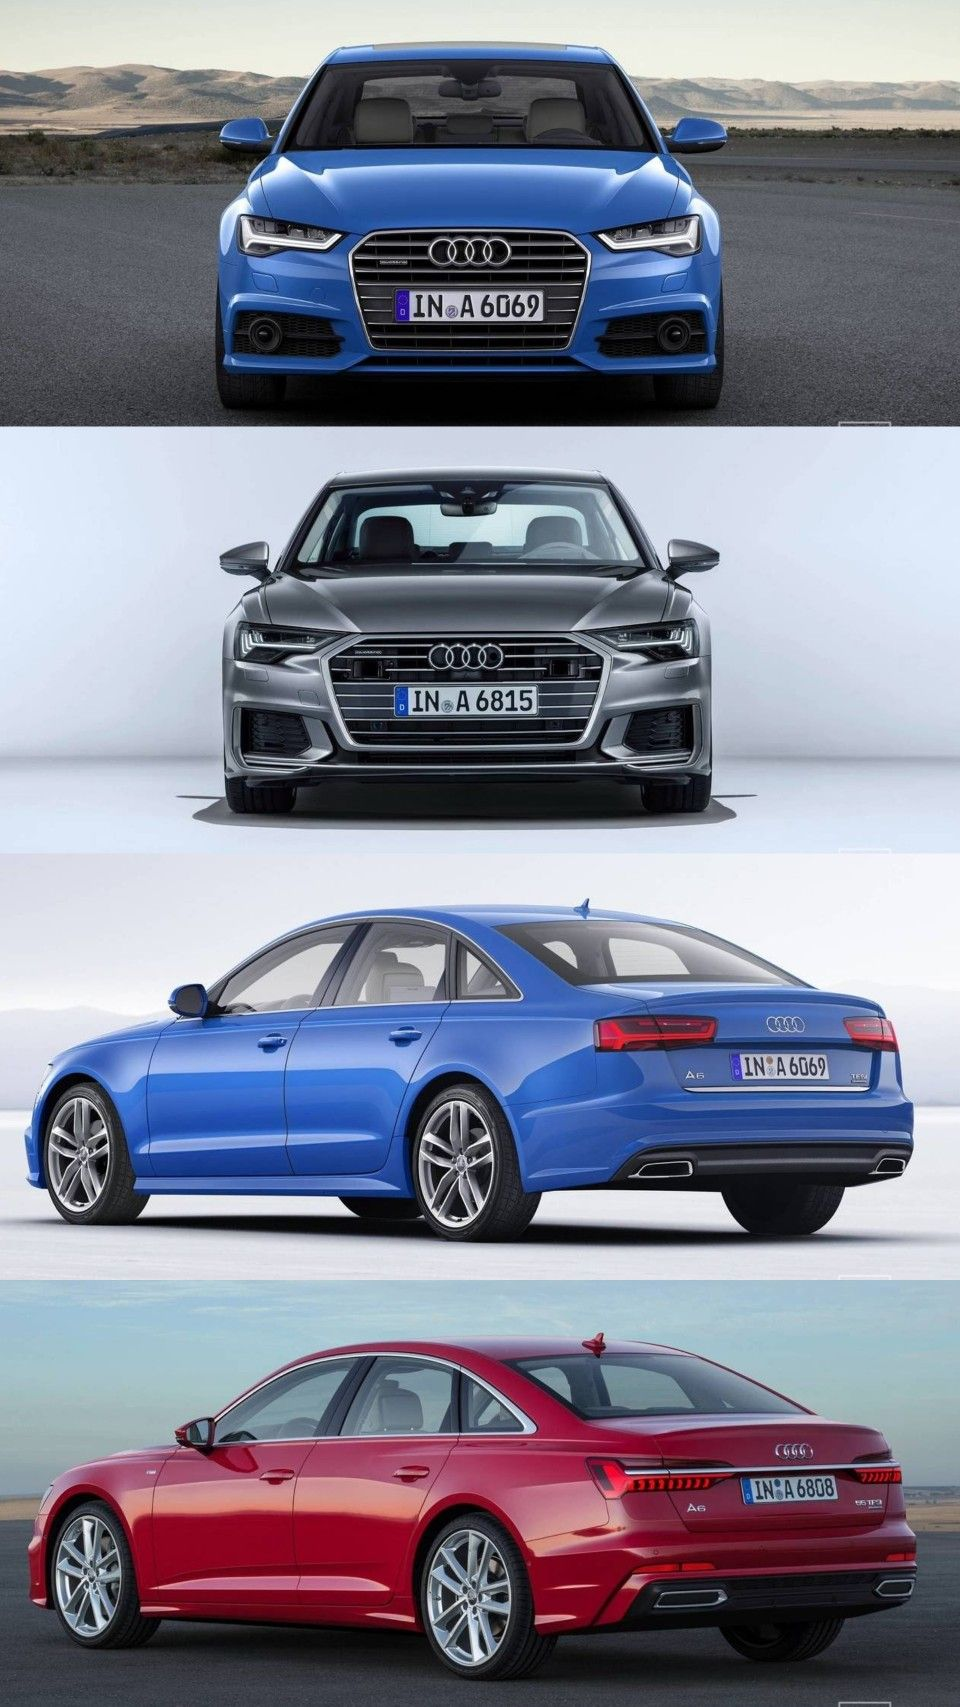 Audi A6 C7 vs Audi A6 C8 #Audi #audia6 #audilover #rs6